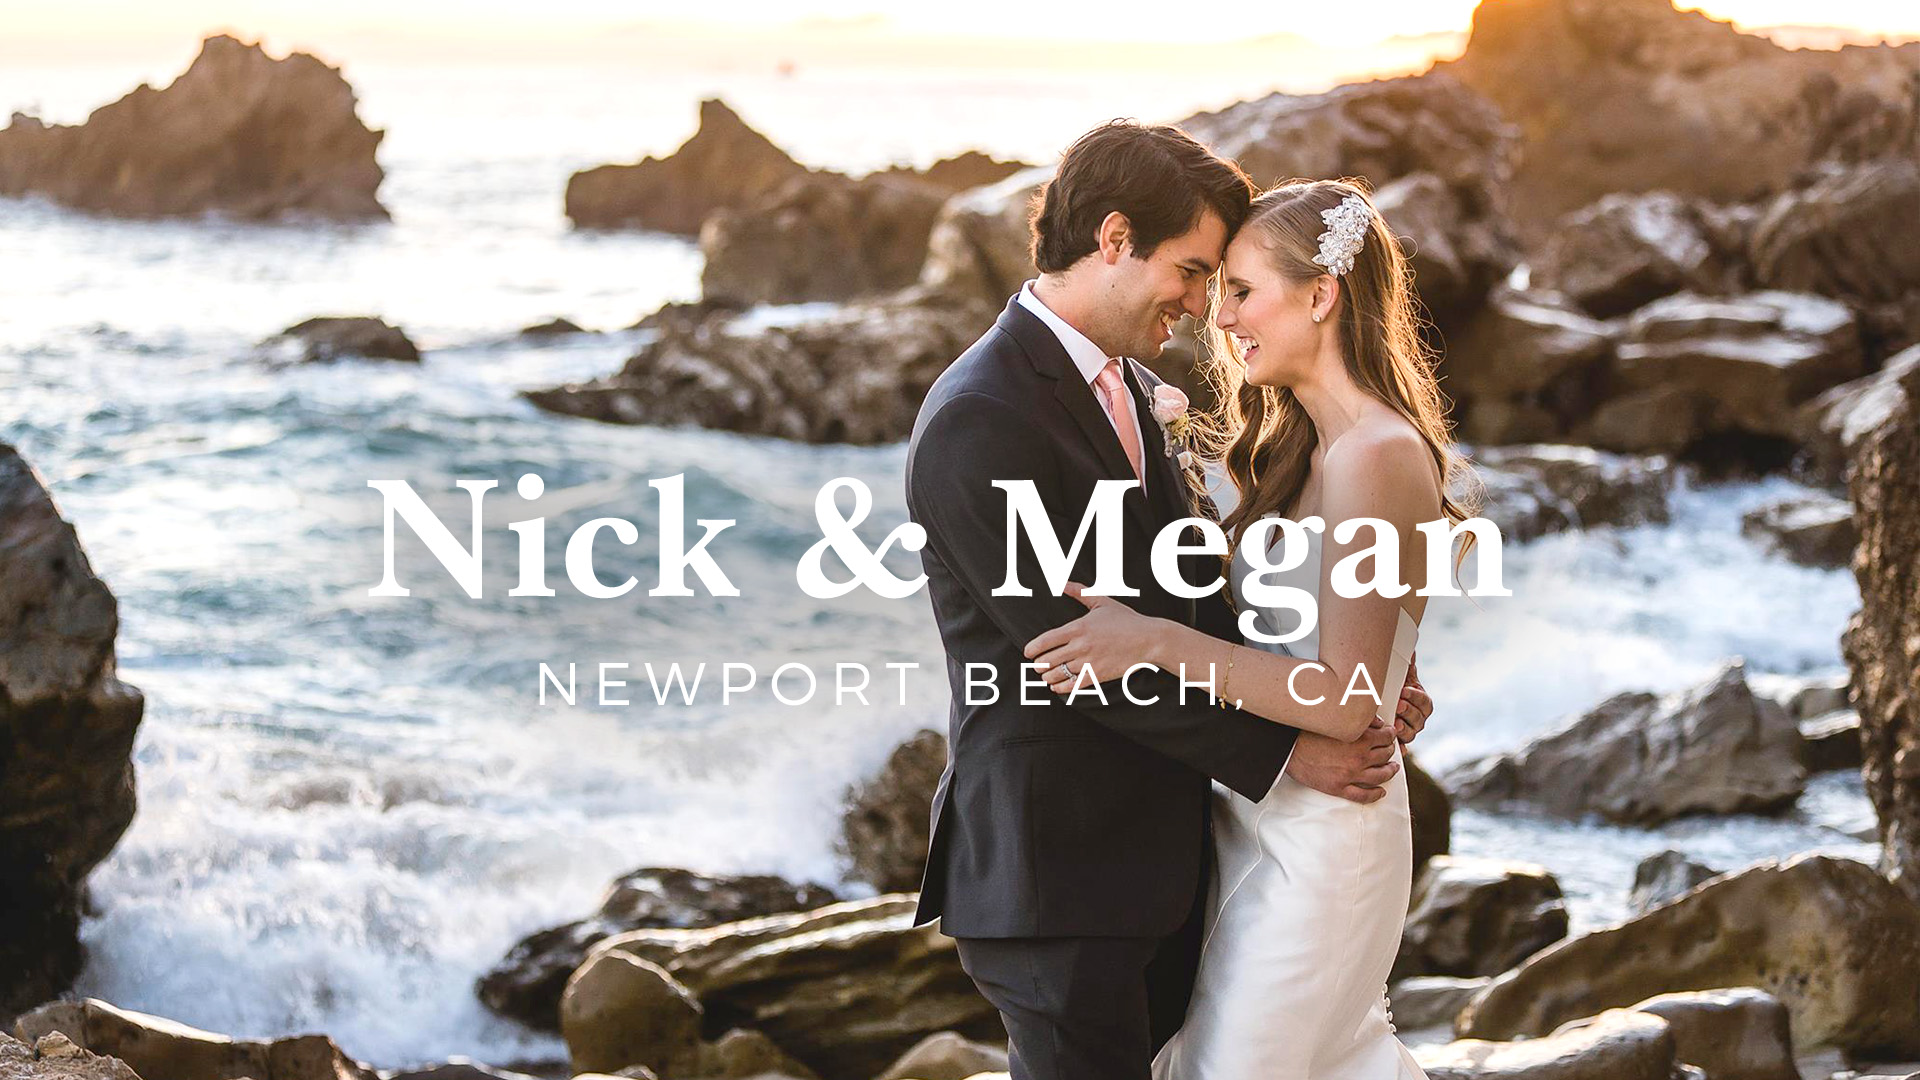 Nick & Megan Castilla